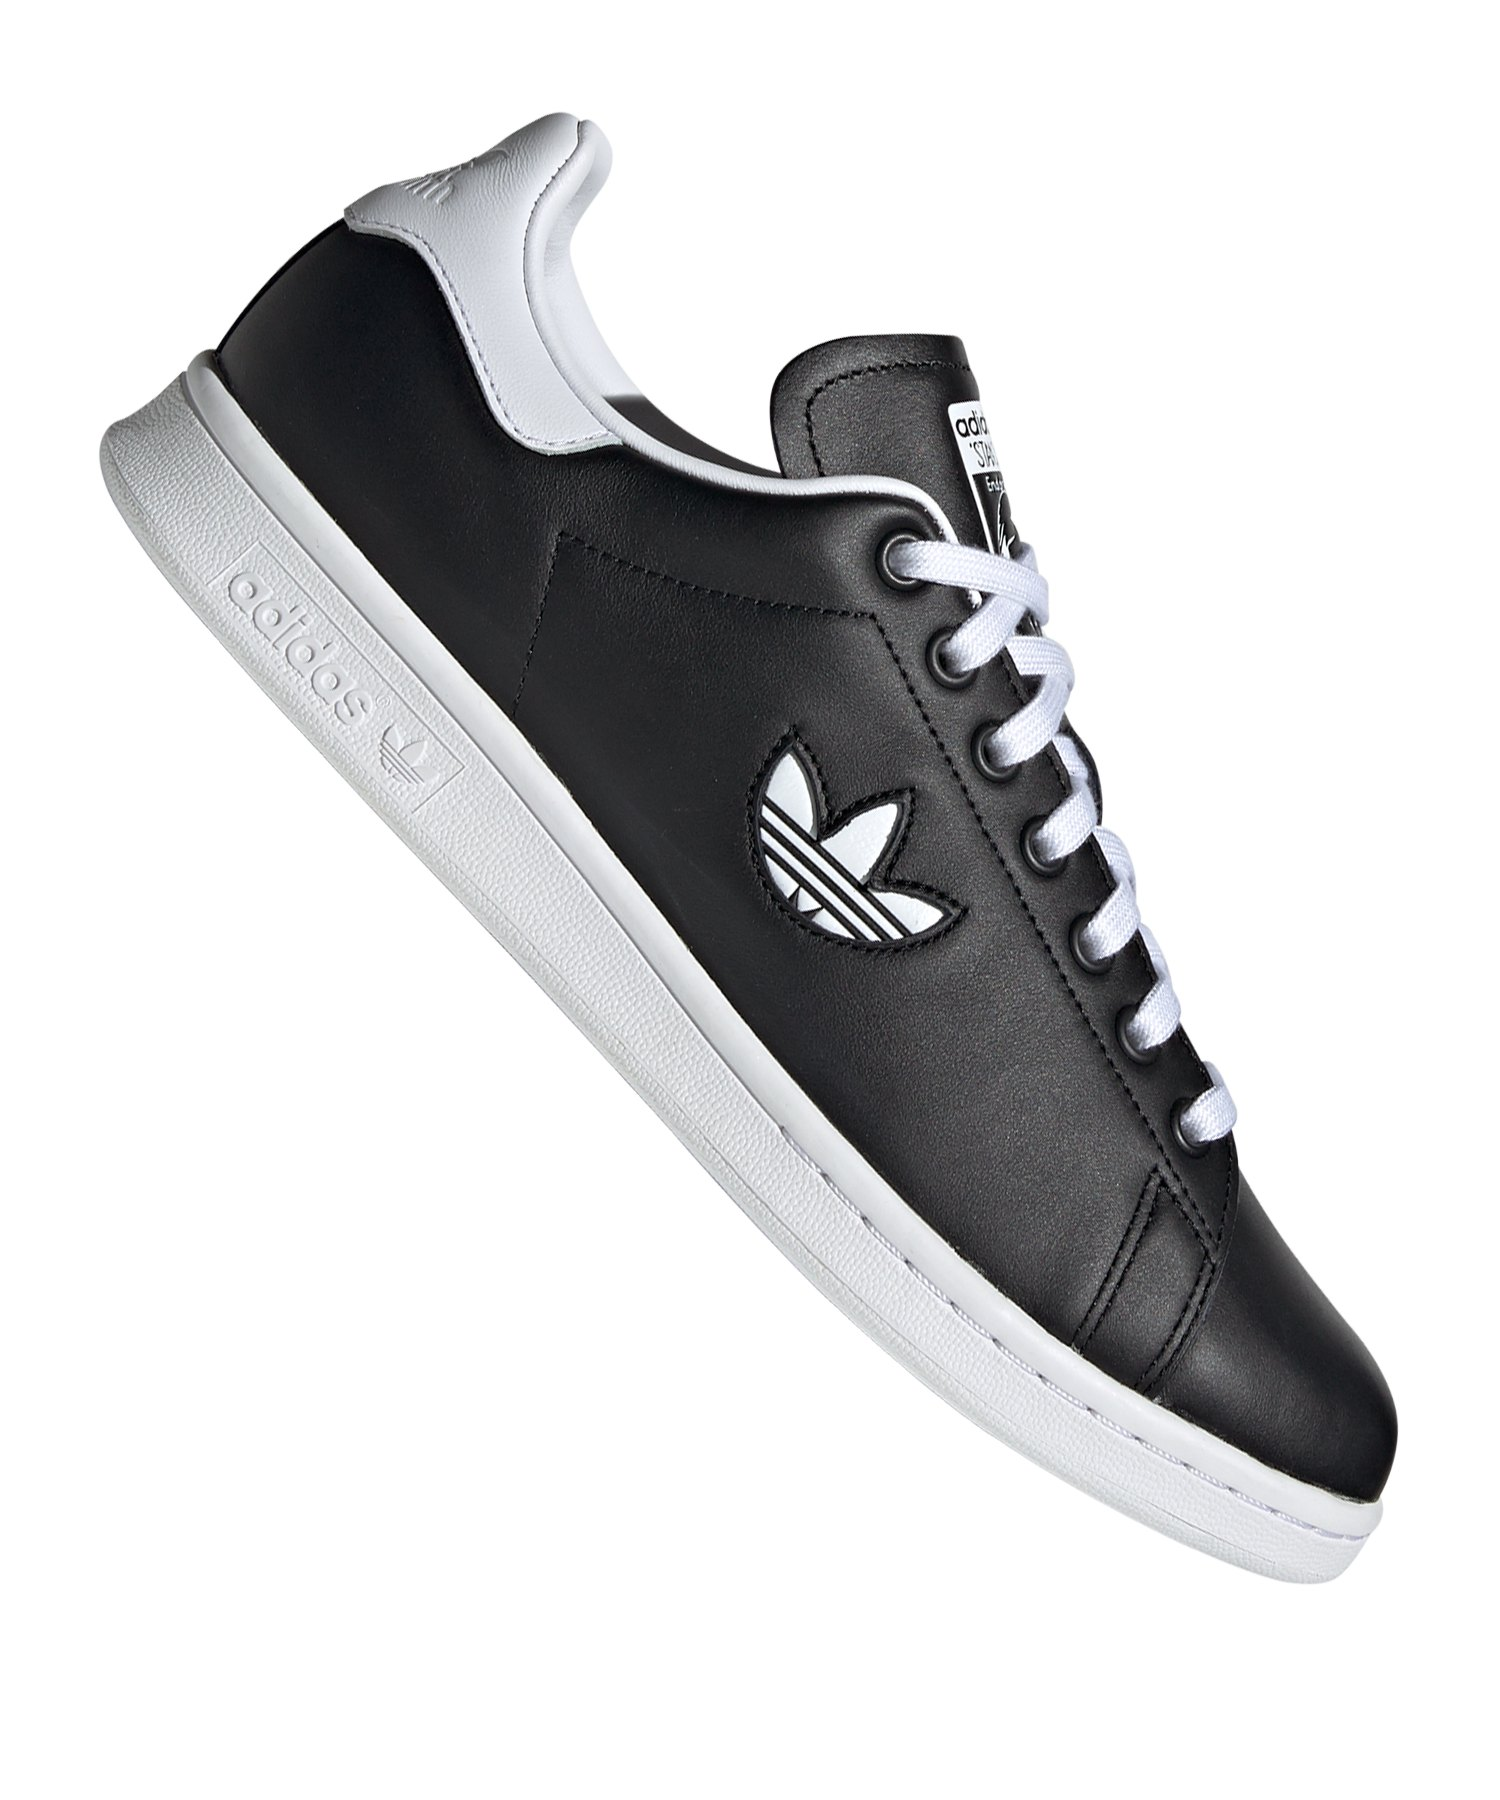 Stan Smith Adidas Klettverschluss